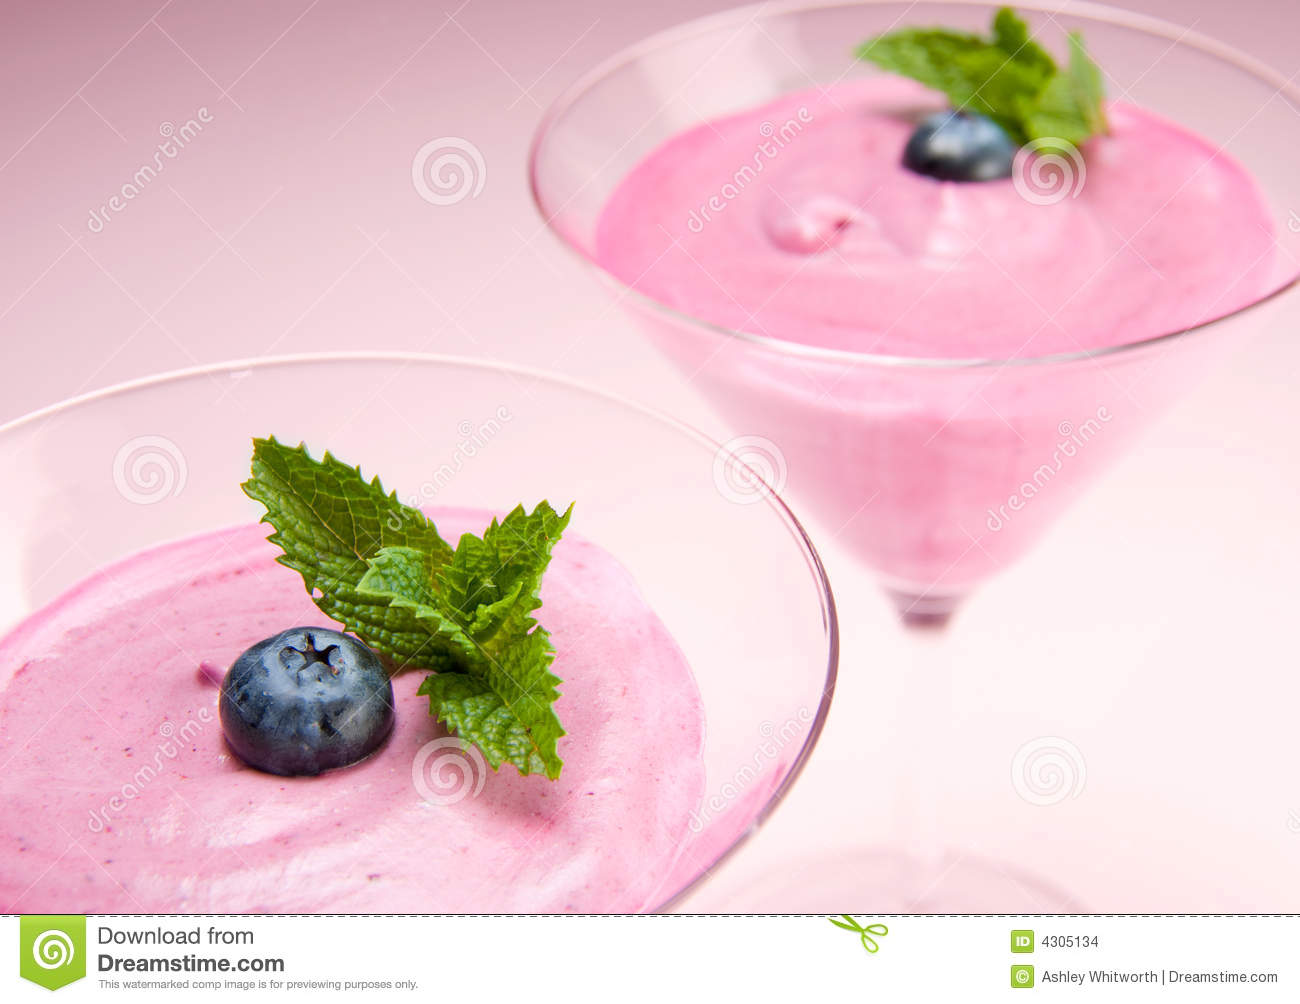 ... berry fool black berry fool rasp berry fool skinny straw berry fool